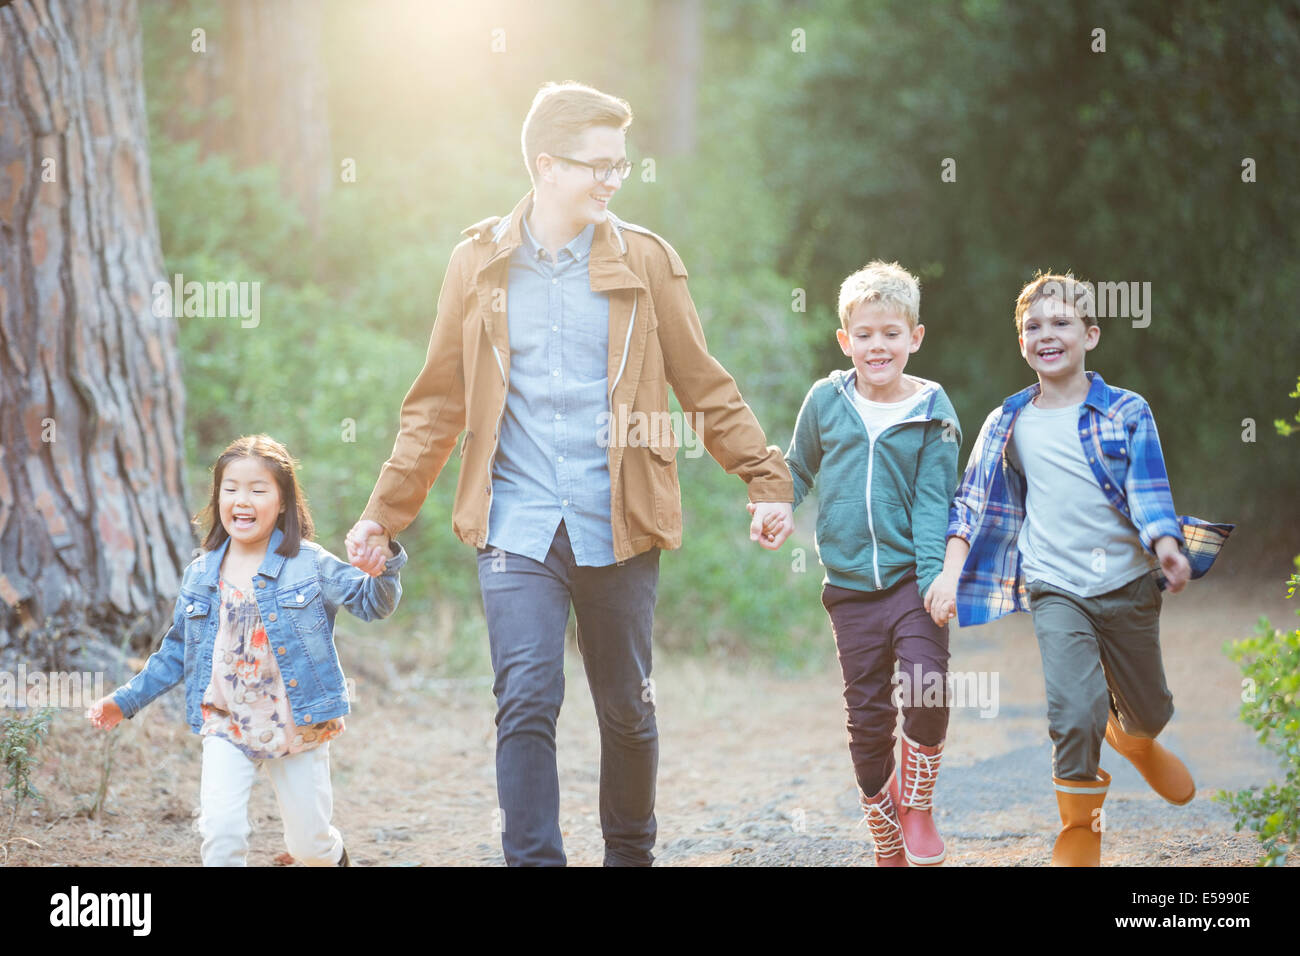 Students and teacher walking in forest - Stock Image